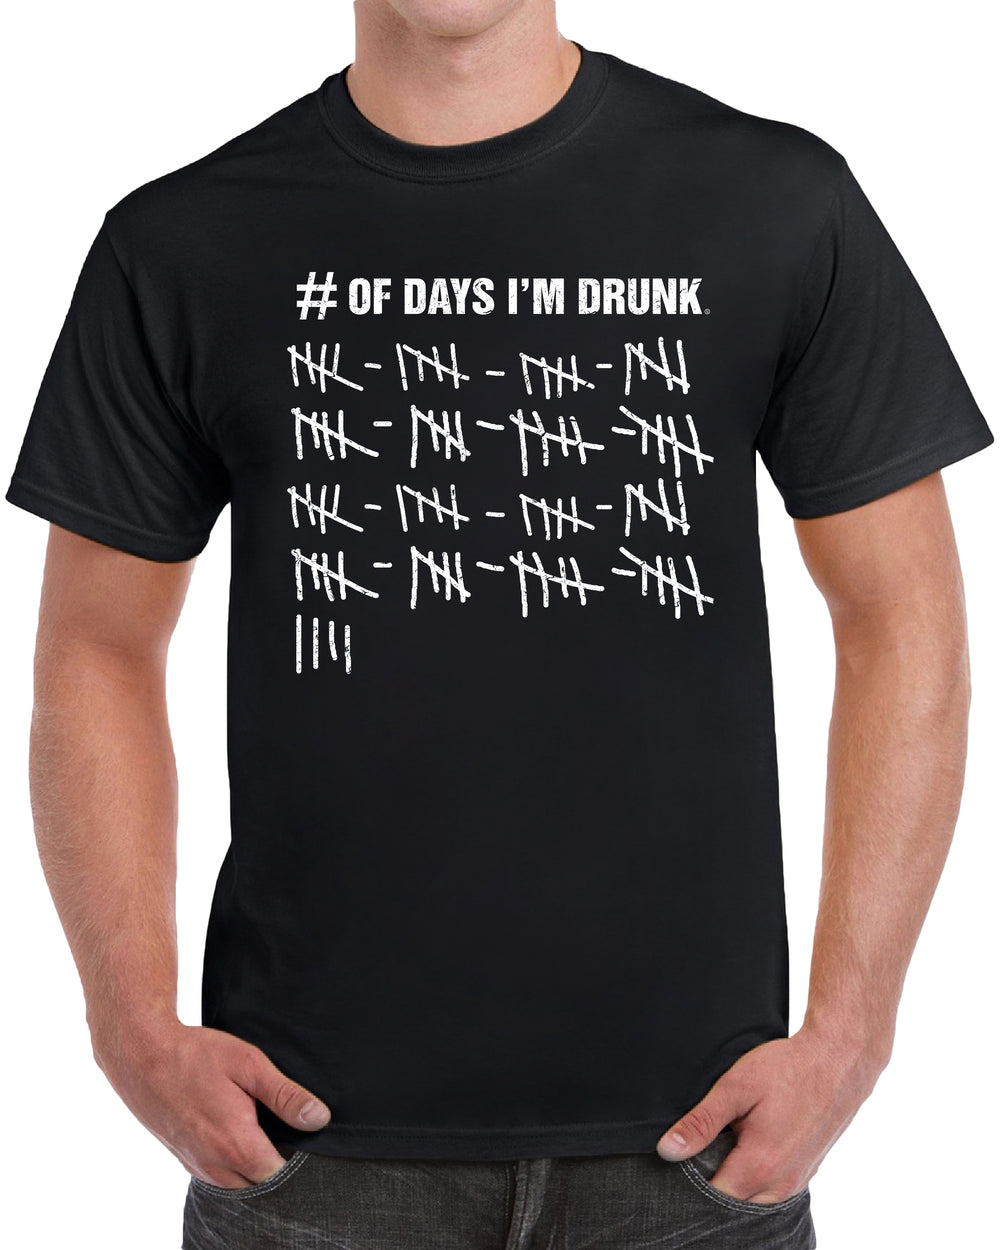 Number of Days I'm Drunk - Distressed Print